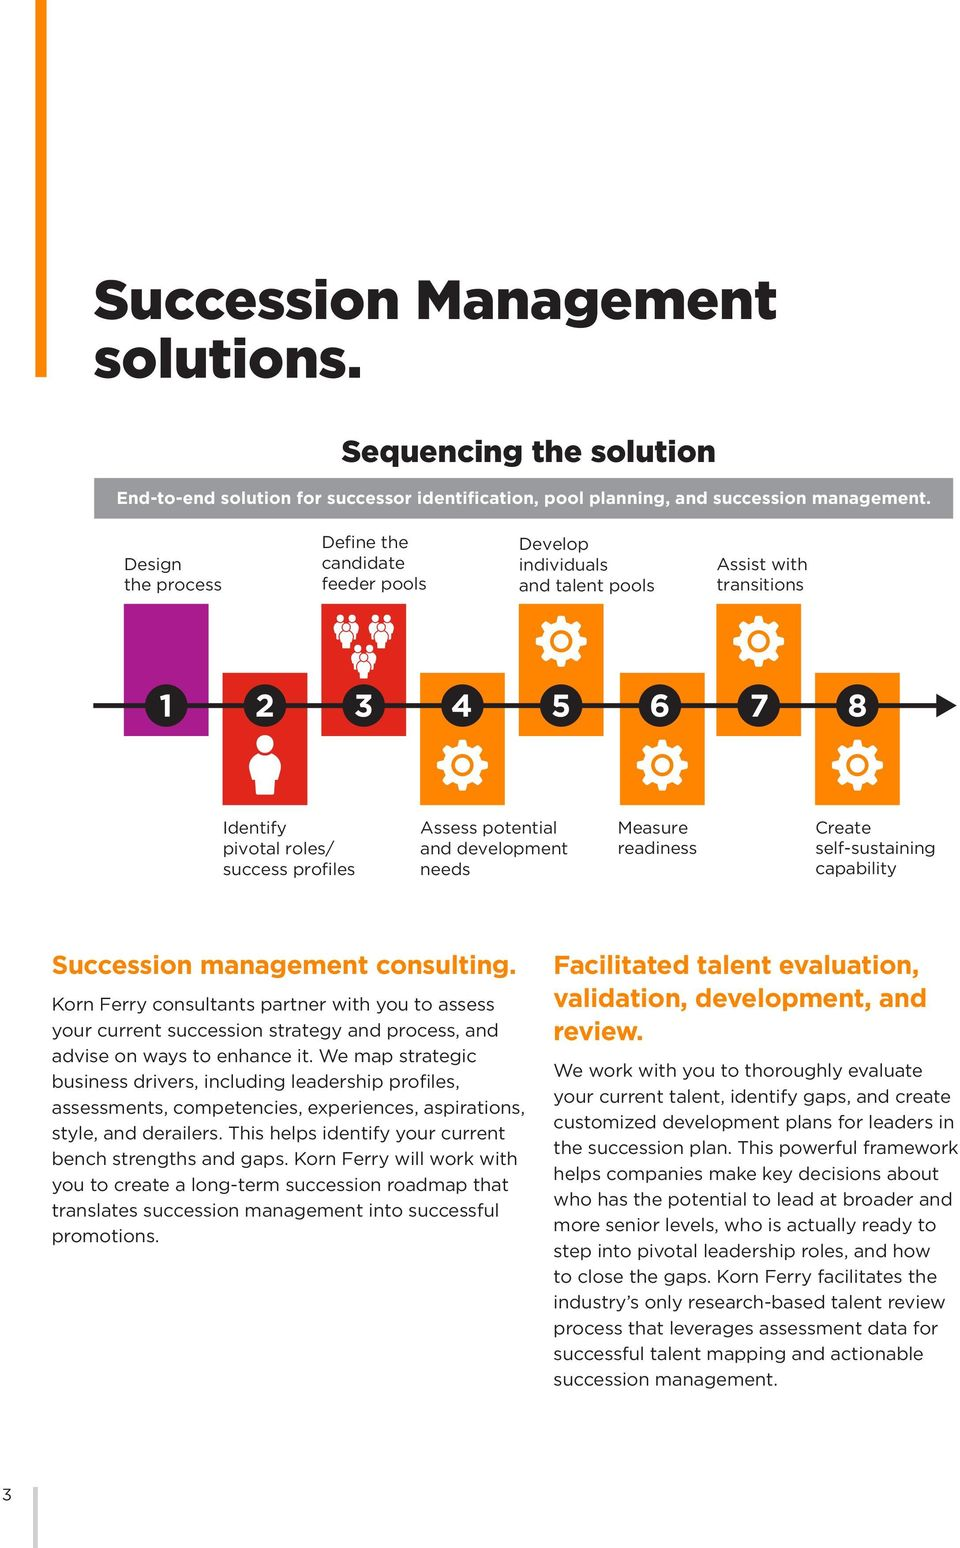 development needs Measure readiness Create self-sustaining capability Succession management consulting.